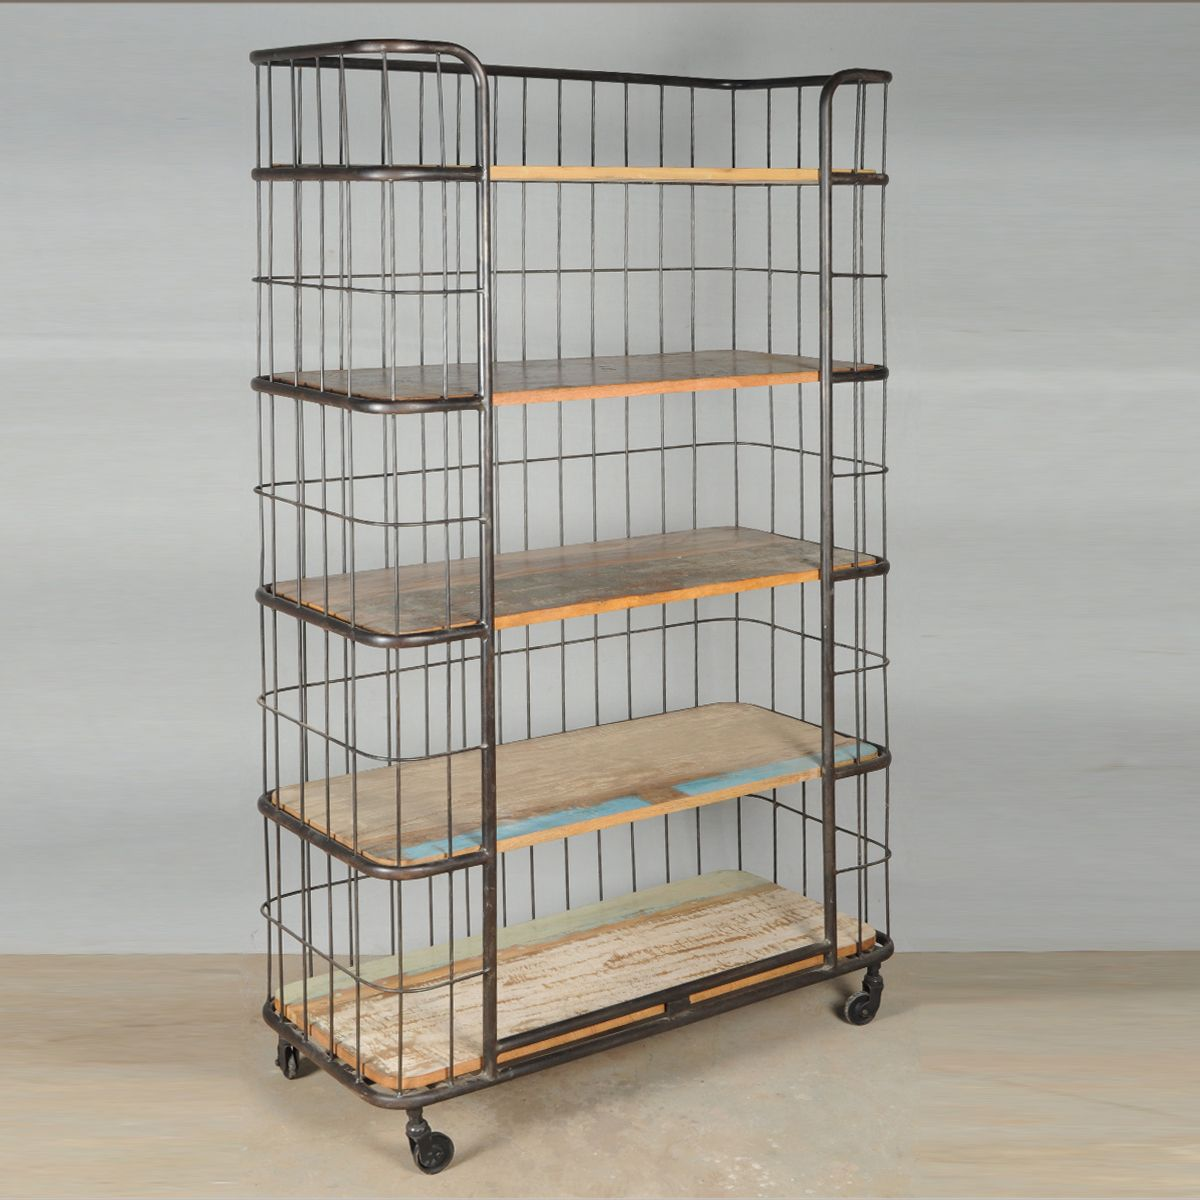 Productimage Bakers Rack Rolling Storage Reclaimed Wood